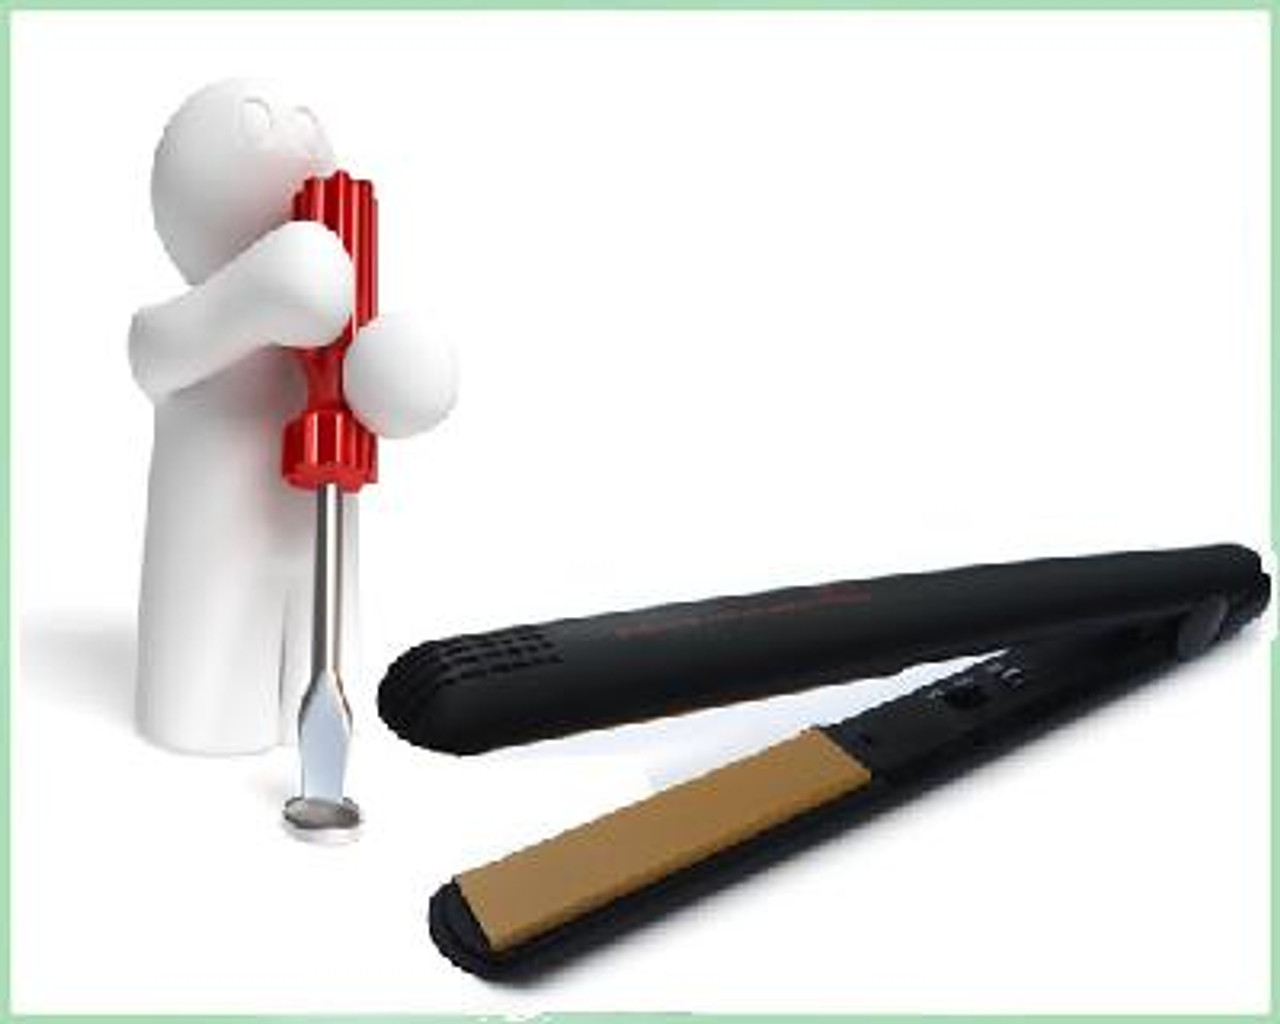 GHD Professional Repair Service